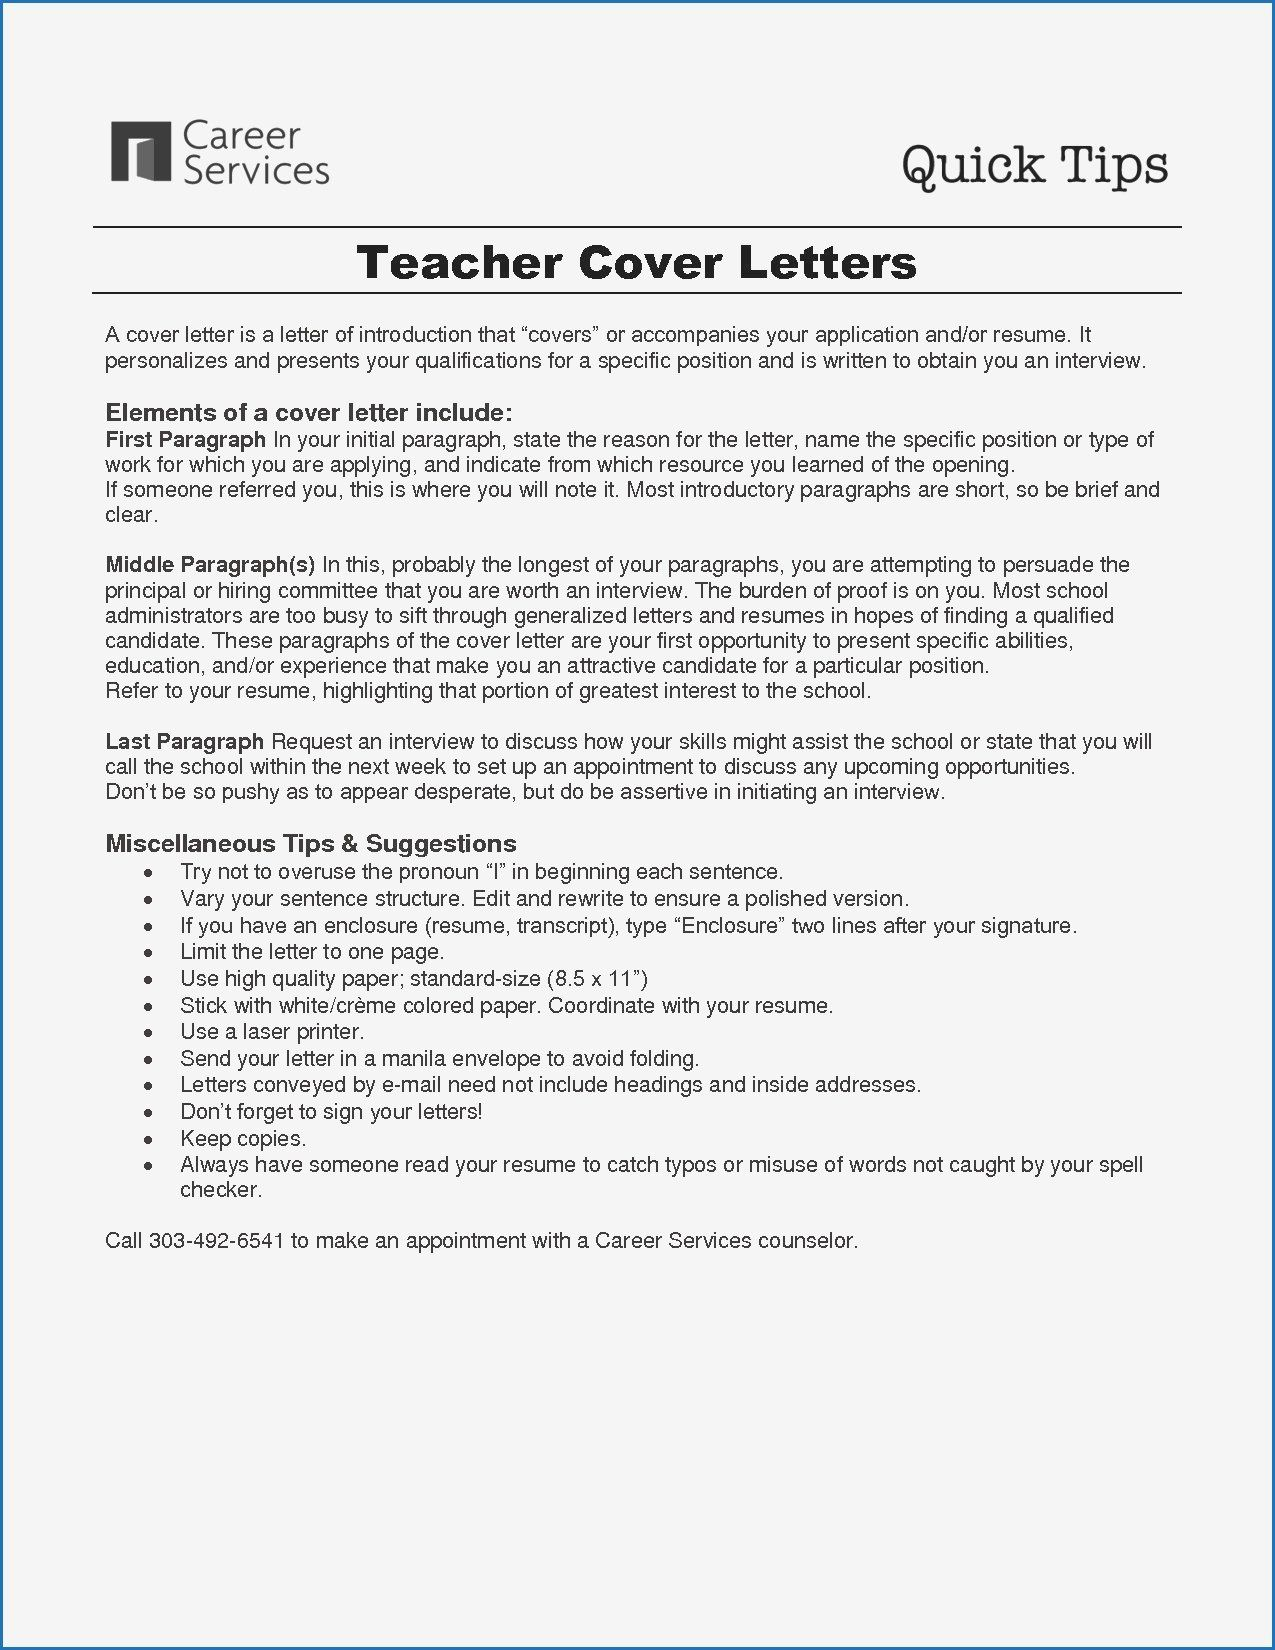 30 School Counseling Resume Examples In 2020 Teaching Cover Letter Teacher Cover Letter Example Cover Letter Teacher